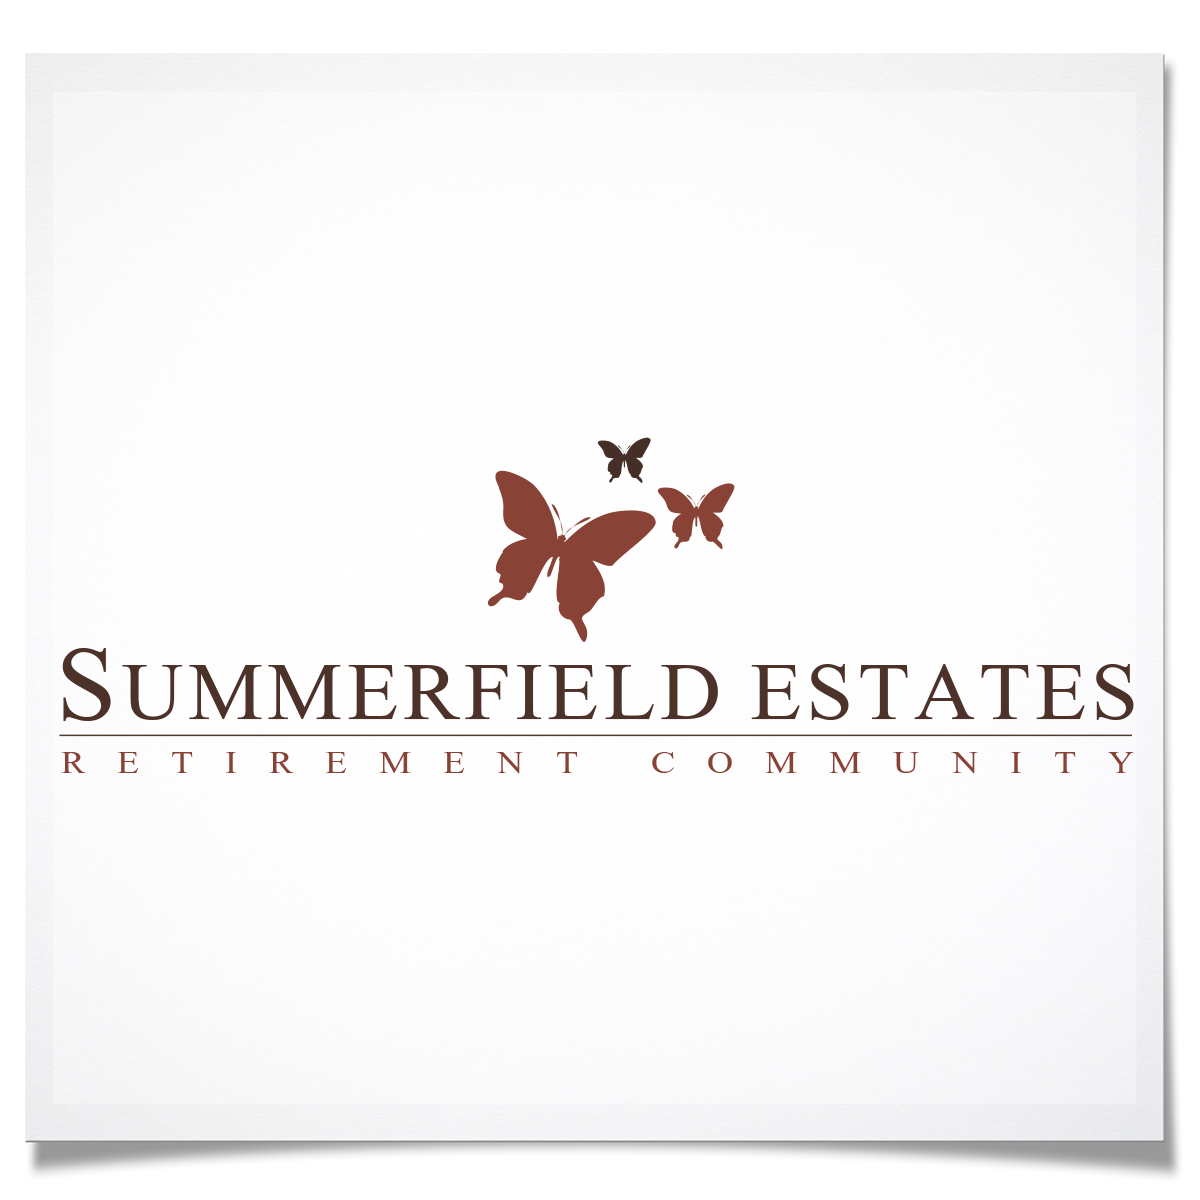 Summerfield Estates Retirement Community